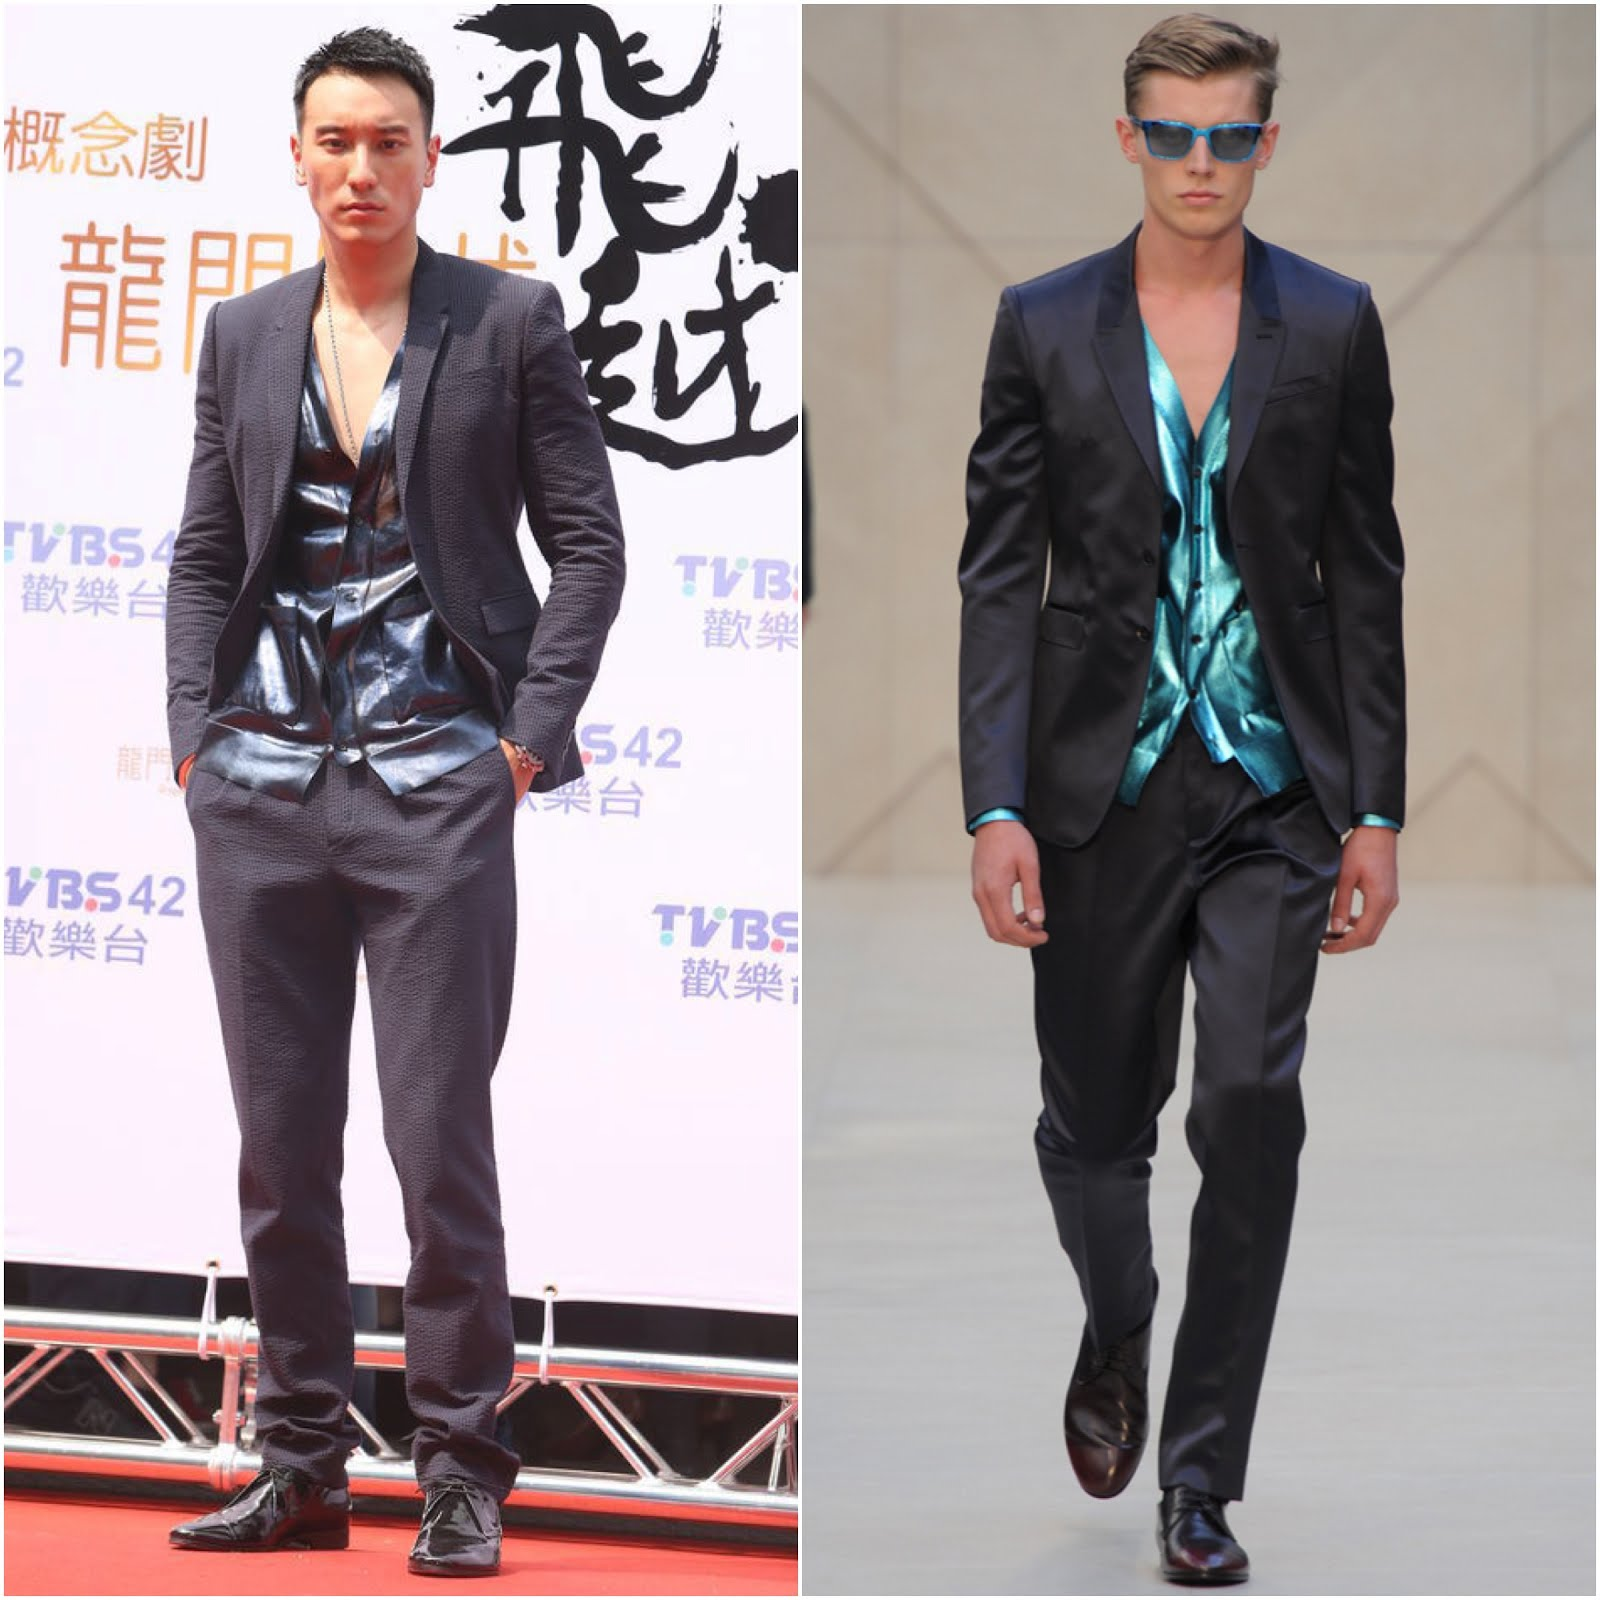 00O00 Menswear Blog Wang Yang Ming [王阳明] in Burberry Prorsum seer suckle suit and foil coated metallic cardigan - Promotional appearance in Taiwan 王阳明高温艳阳